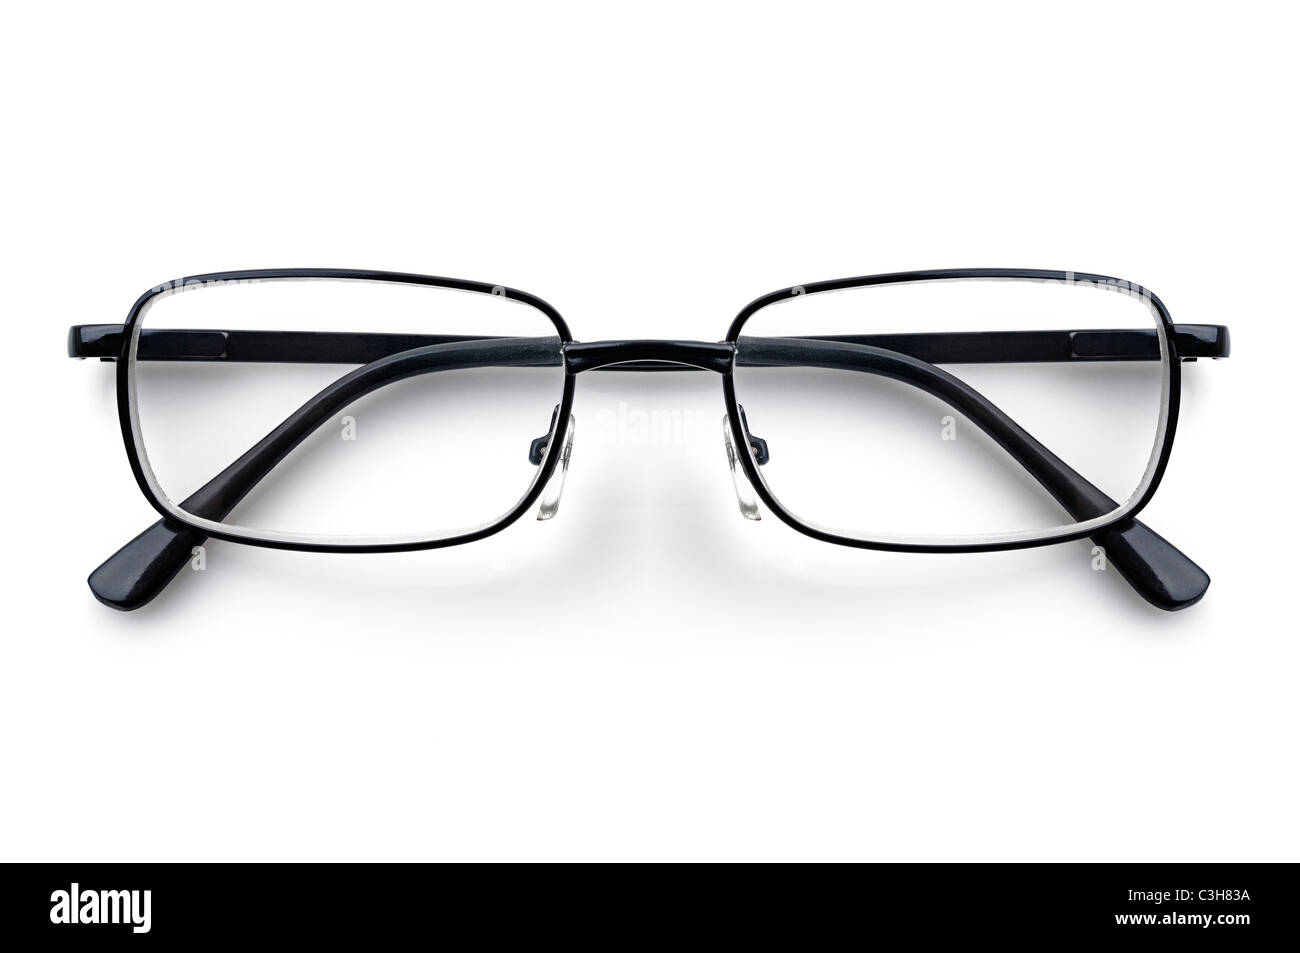 Lunettes Photo Stock